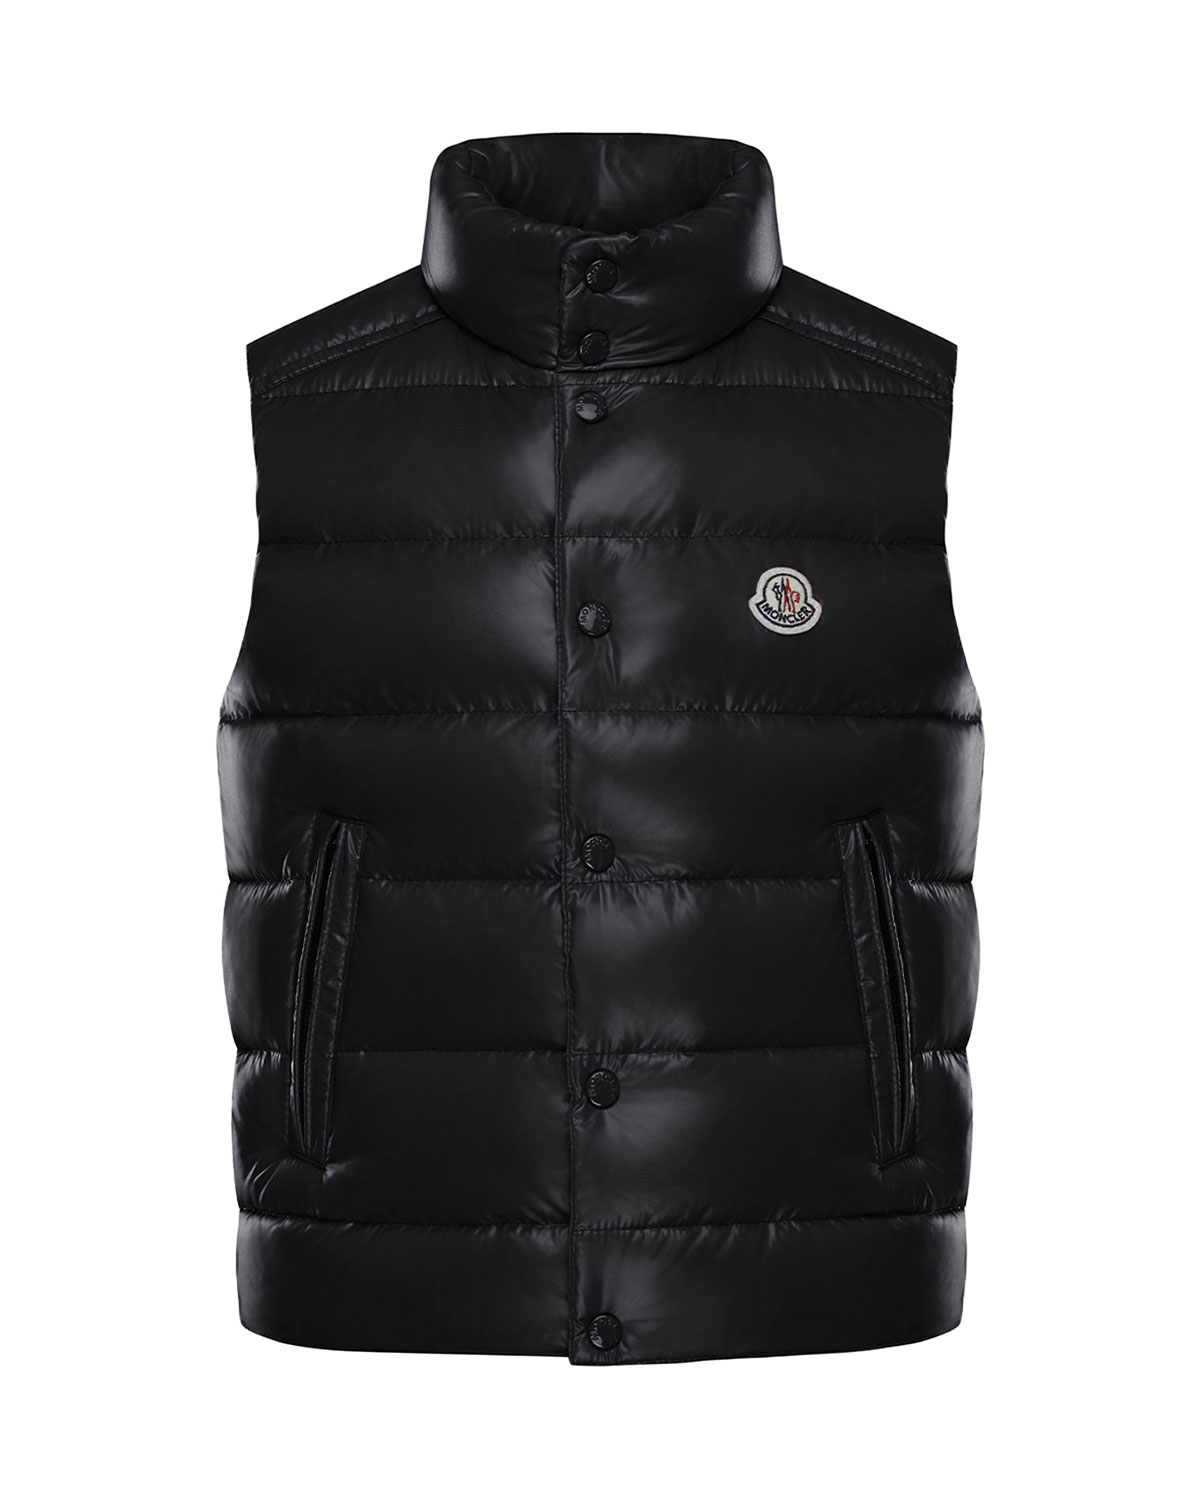 Neiman Marcus Moncler Collection Sale Up to $300 Gift Card